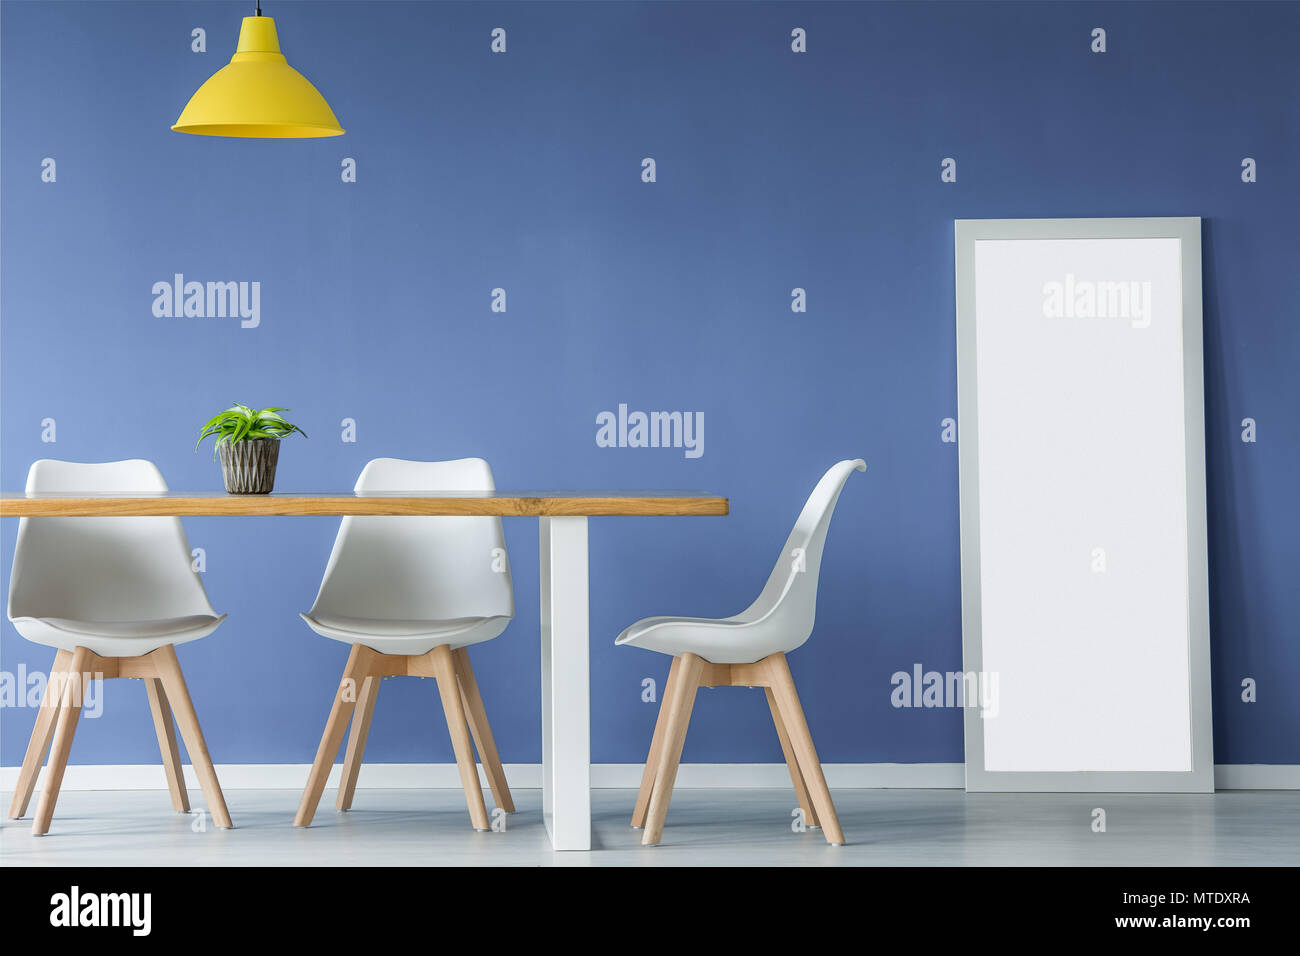 Modern open space interior with white and wooden chairs, table with a plant on top, yellow lamp and a mirror standing against blue wall - Stock Image